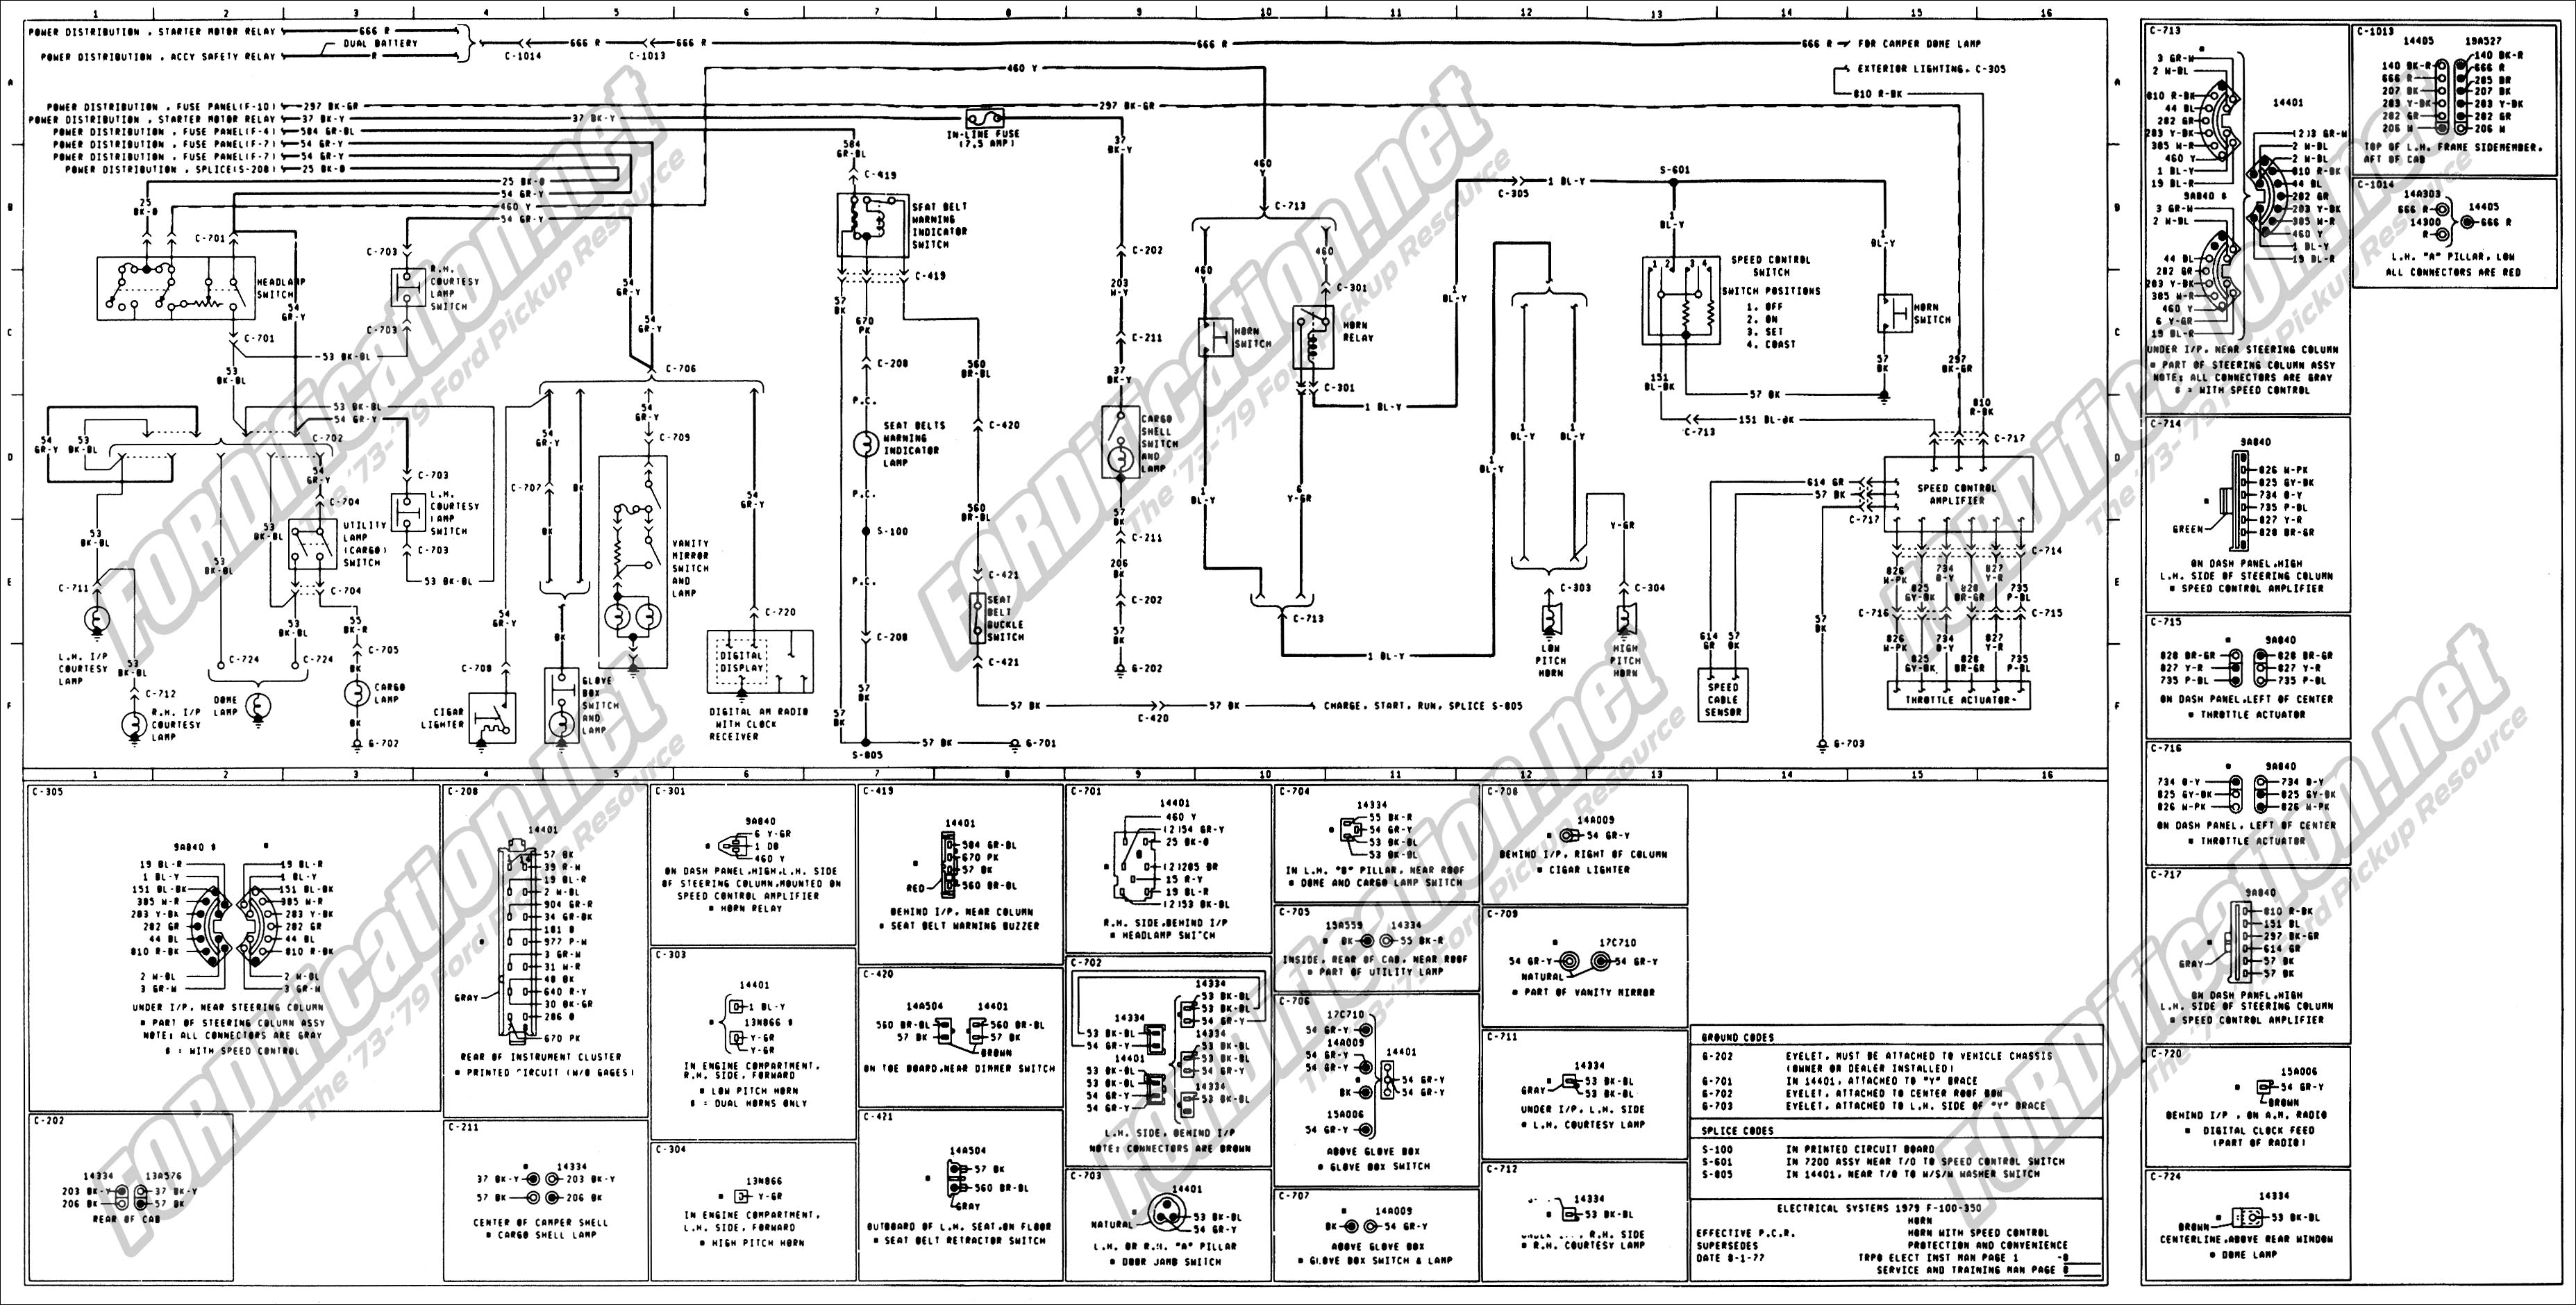 1973 1979 ford truck wiring diagrams schematics fordification net rh fordification net Electronic Ignition Wiring Diagram Typical Ignition Switch Wiring Diagram